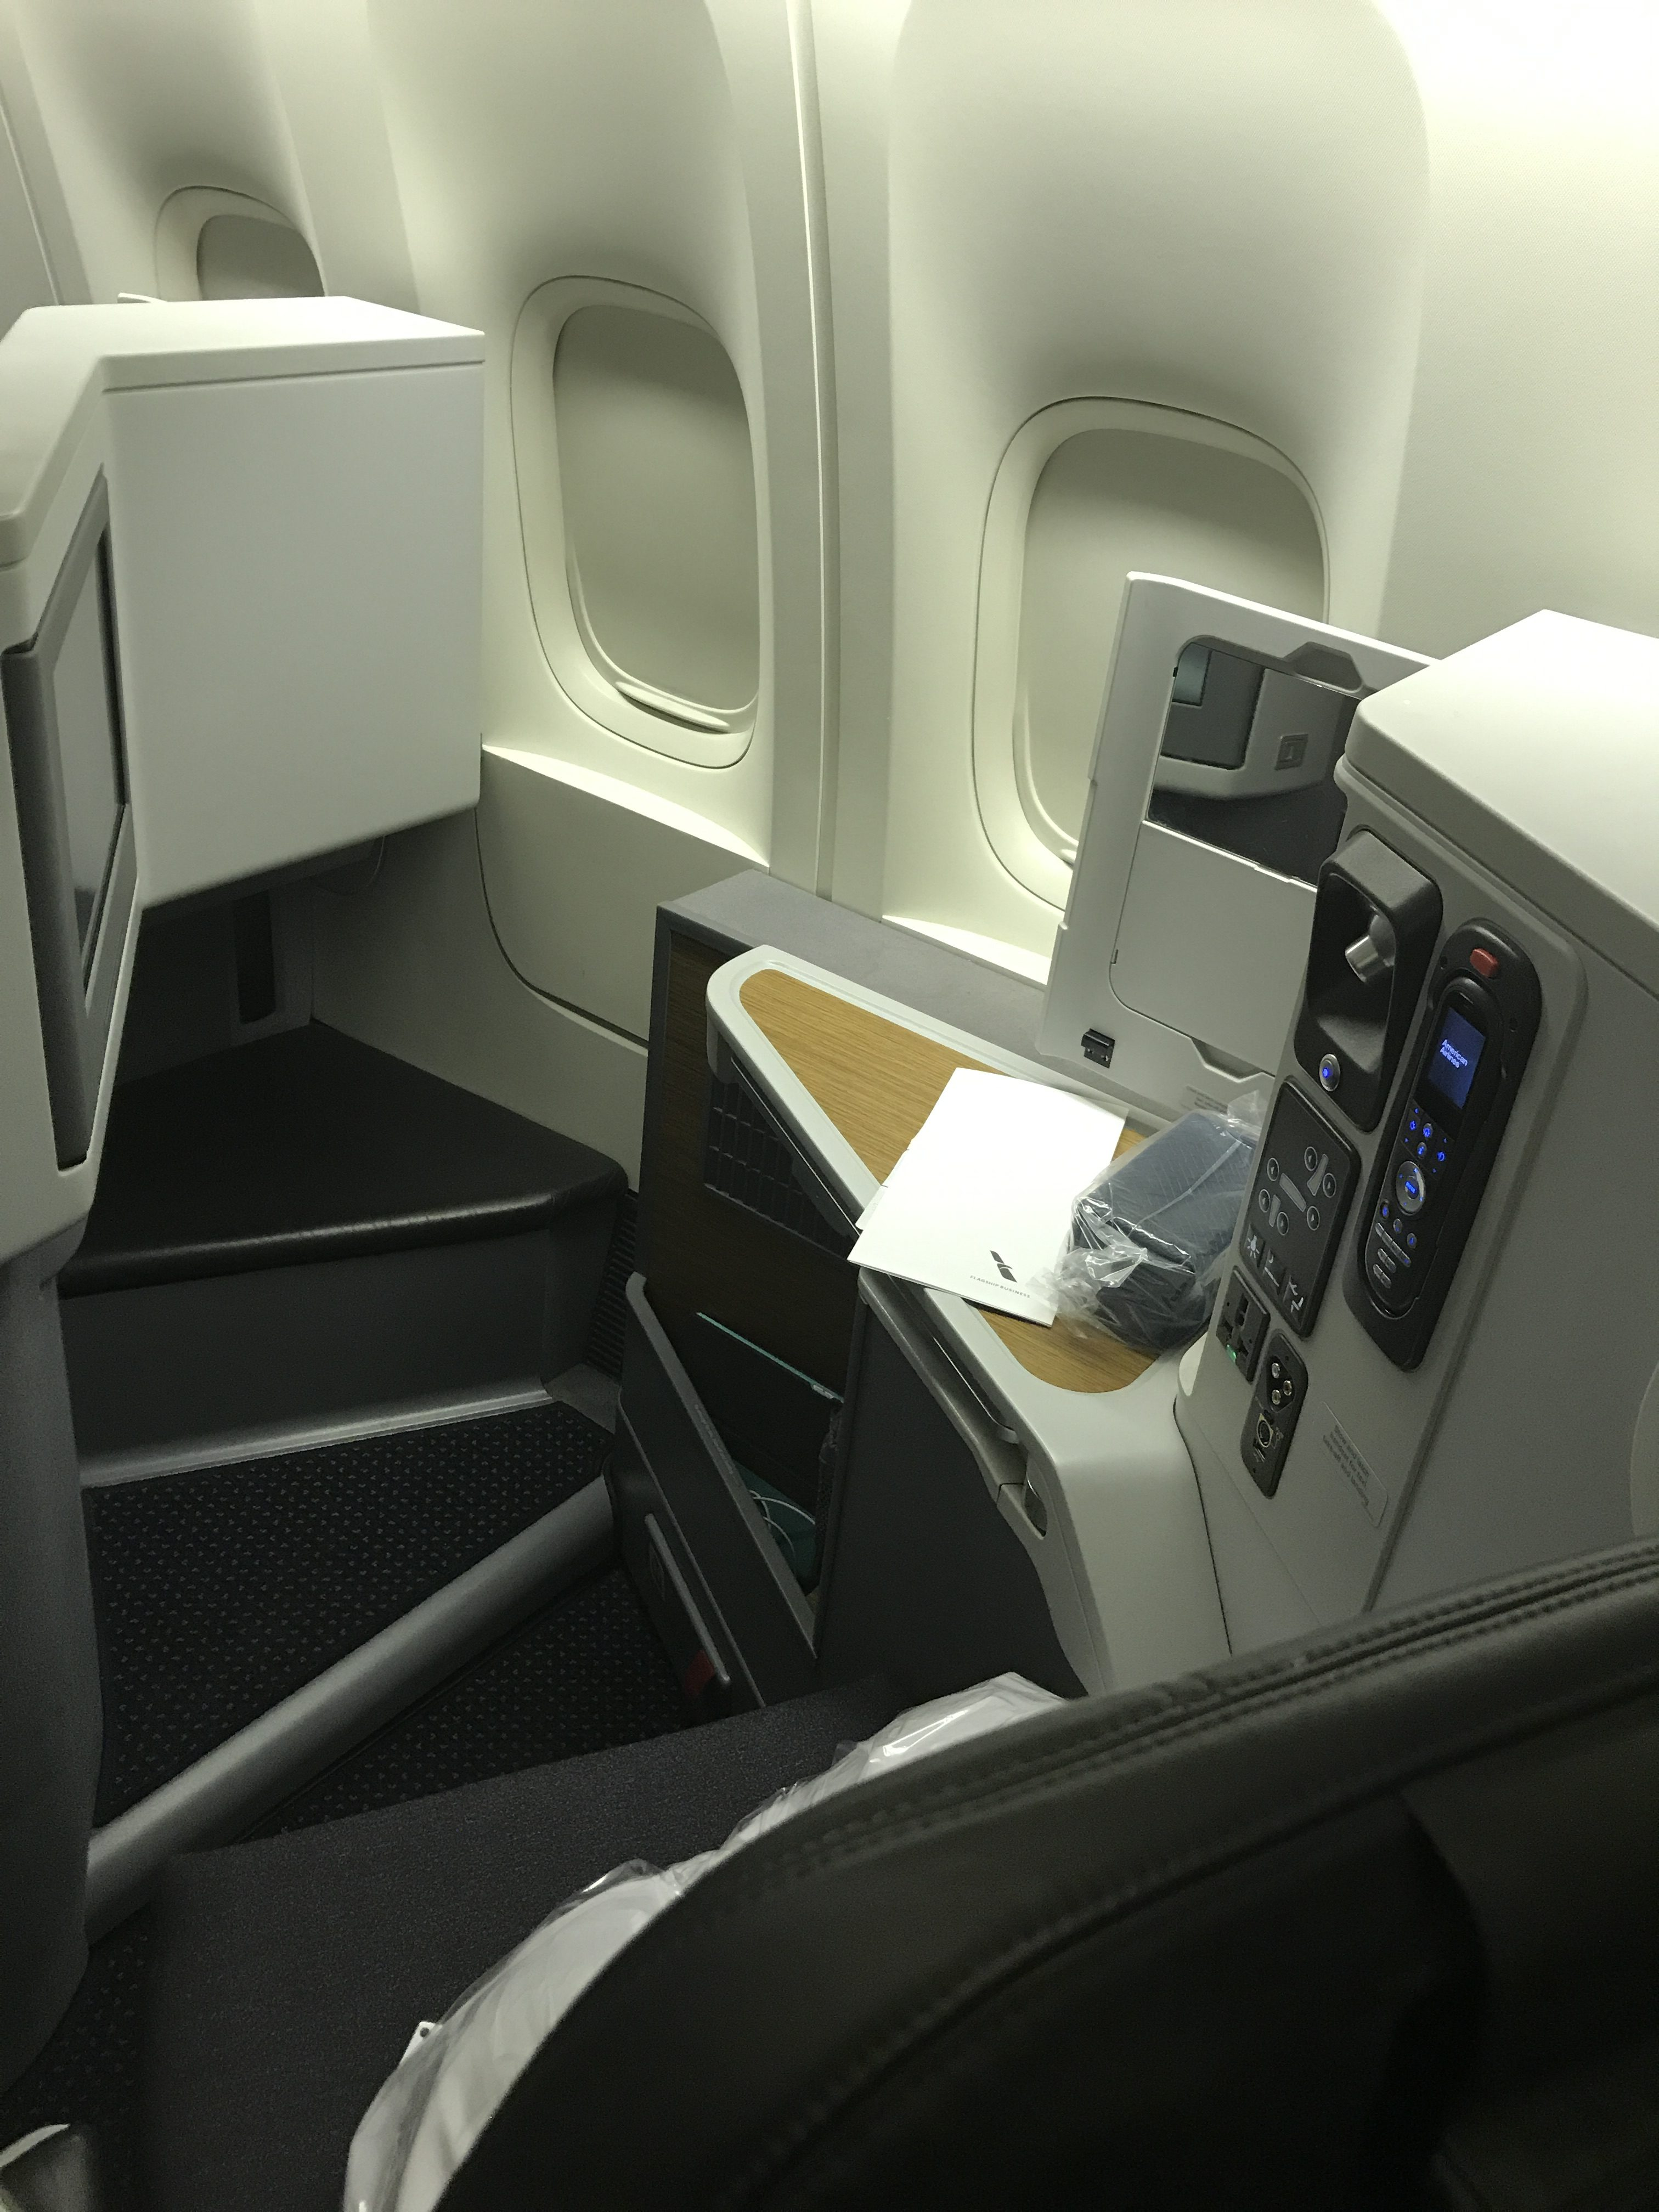 American Airlines B777-300ER business class review - Turning